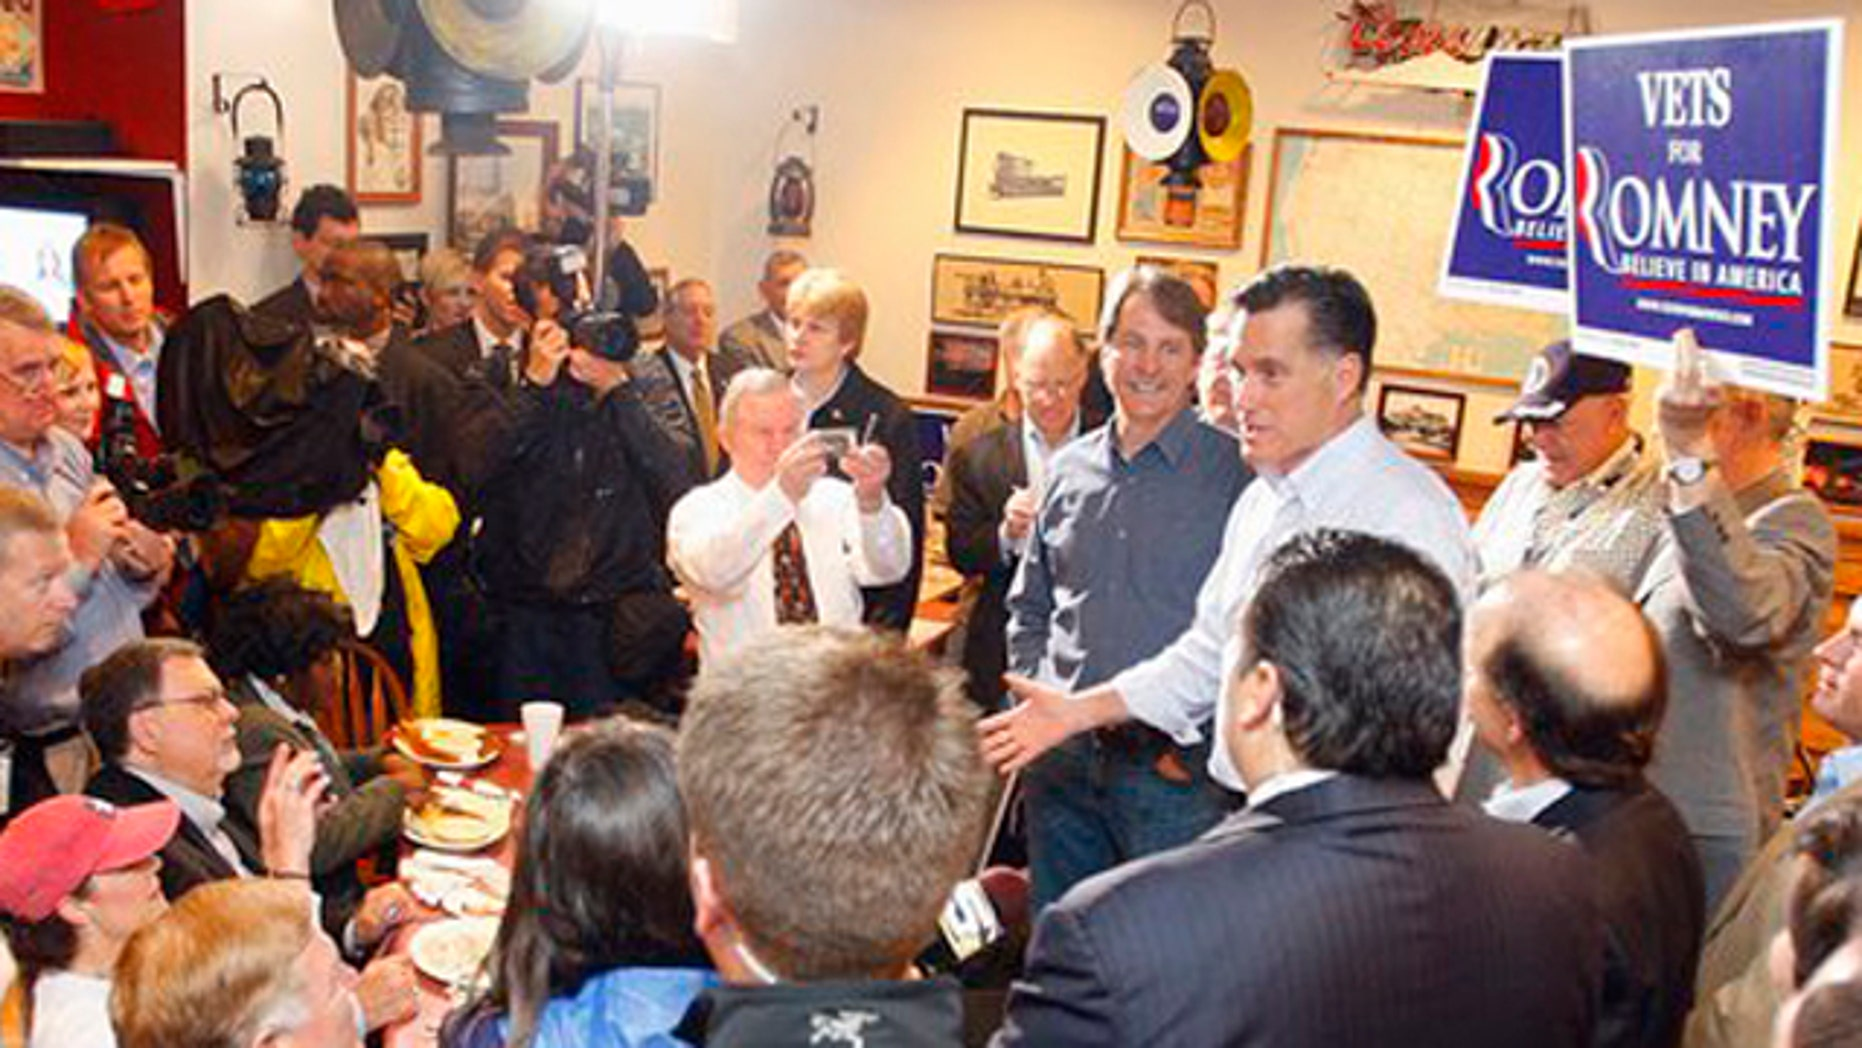 Mar. 12, 2012: Republican presidential candidate, former Massachusetts Gov. Mitt Romney greets supporters who braved the rain during a campaign stop at the Whistle Stop Cafe.